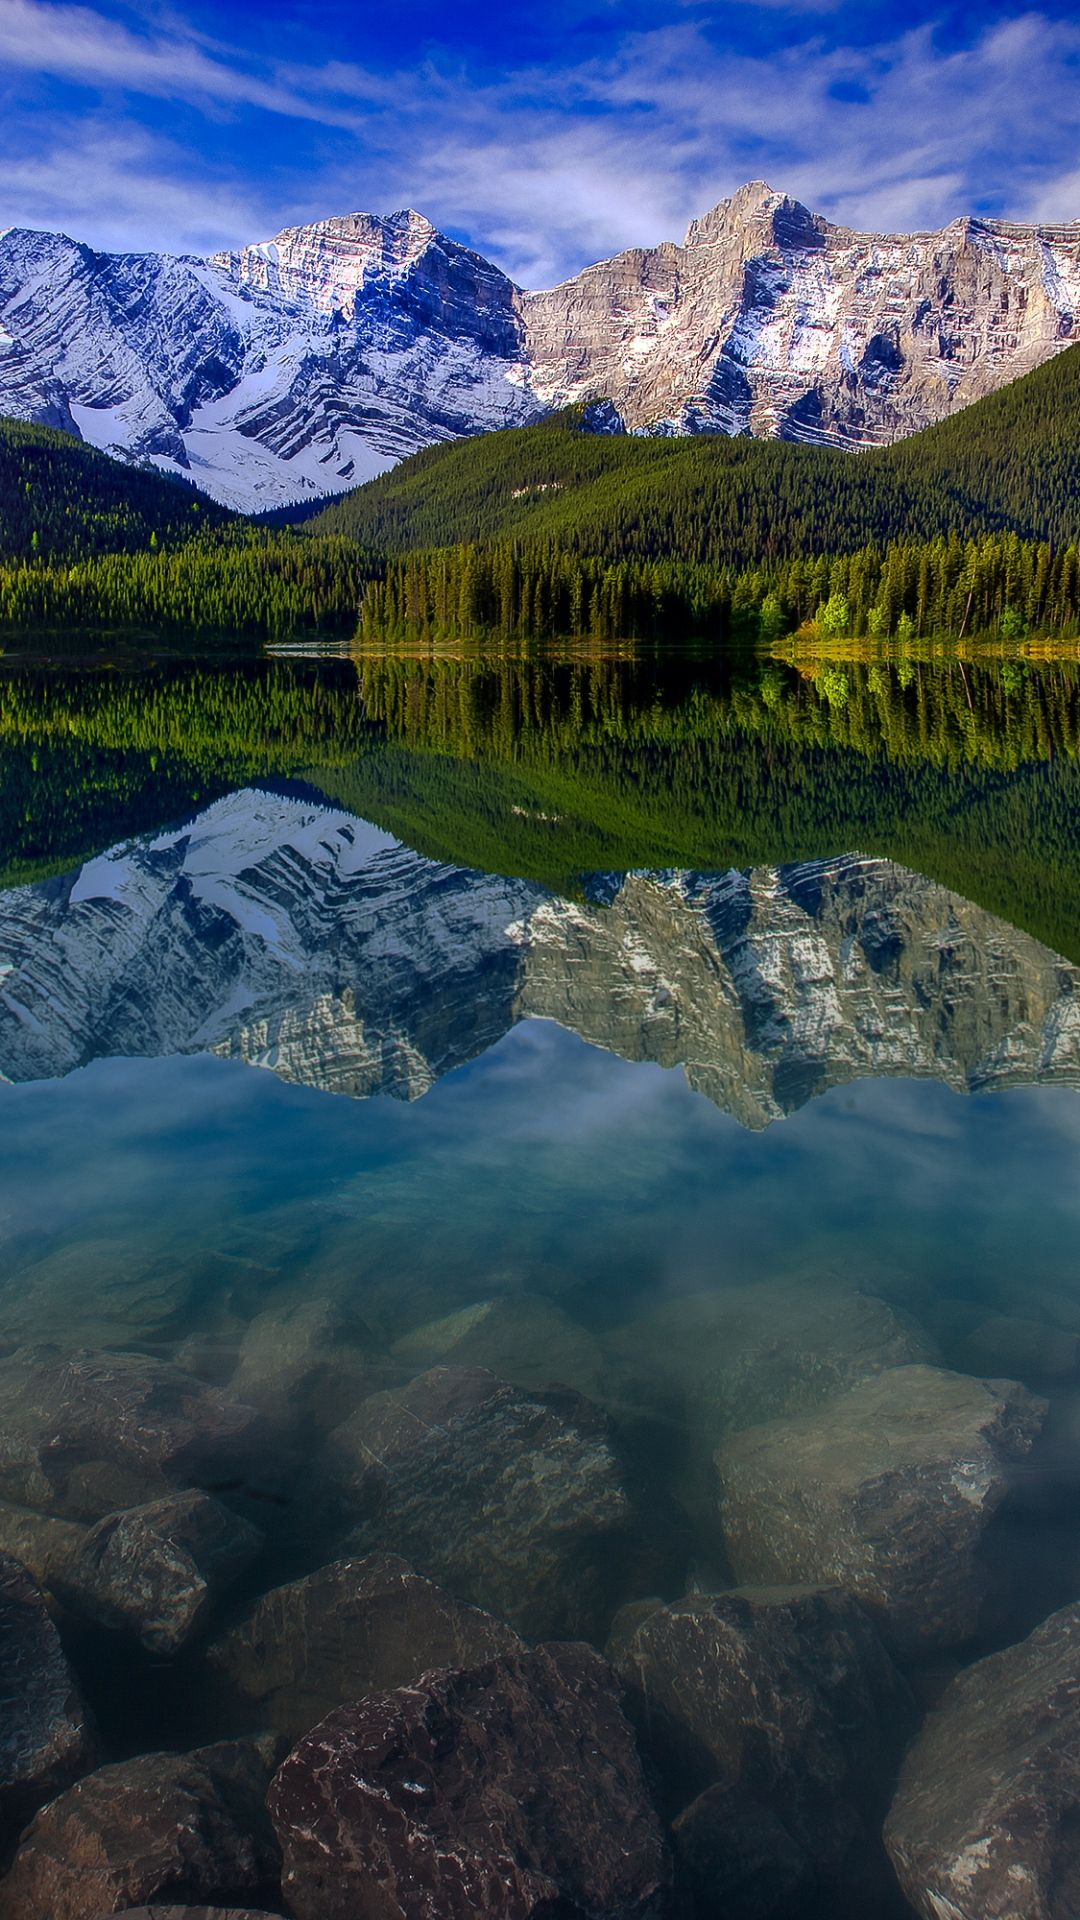 Mountain Landscape Reflection Mountains Lake Rocks Iphone 6 Plus Wallpaper Iphone Wallpaper Landscape Scenery Mountain Landscape Hd wallpaper lake ice mountains valley